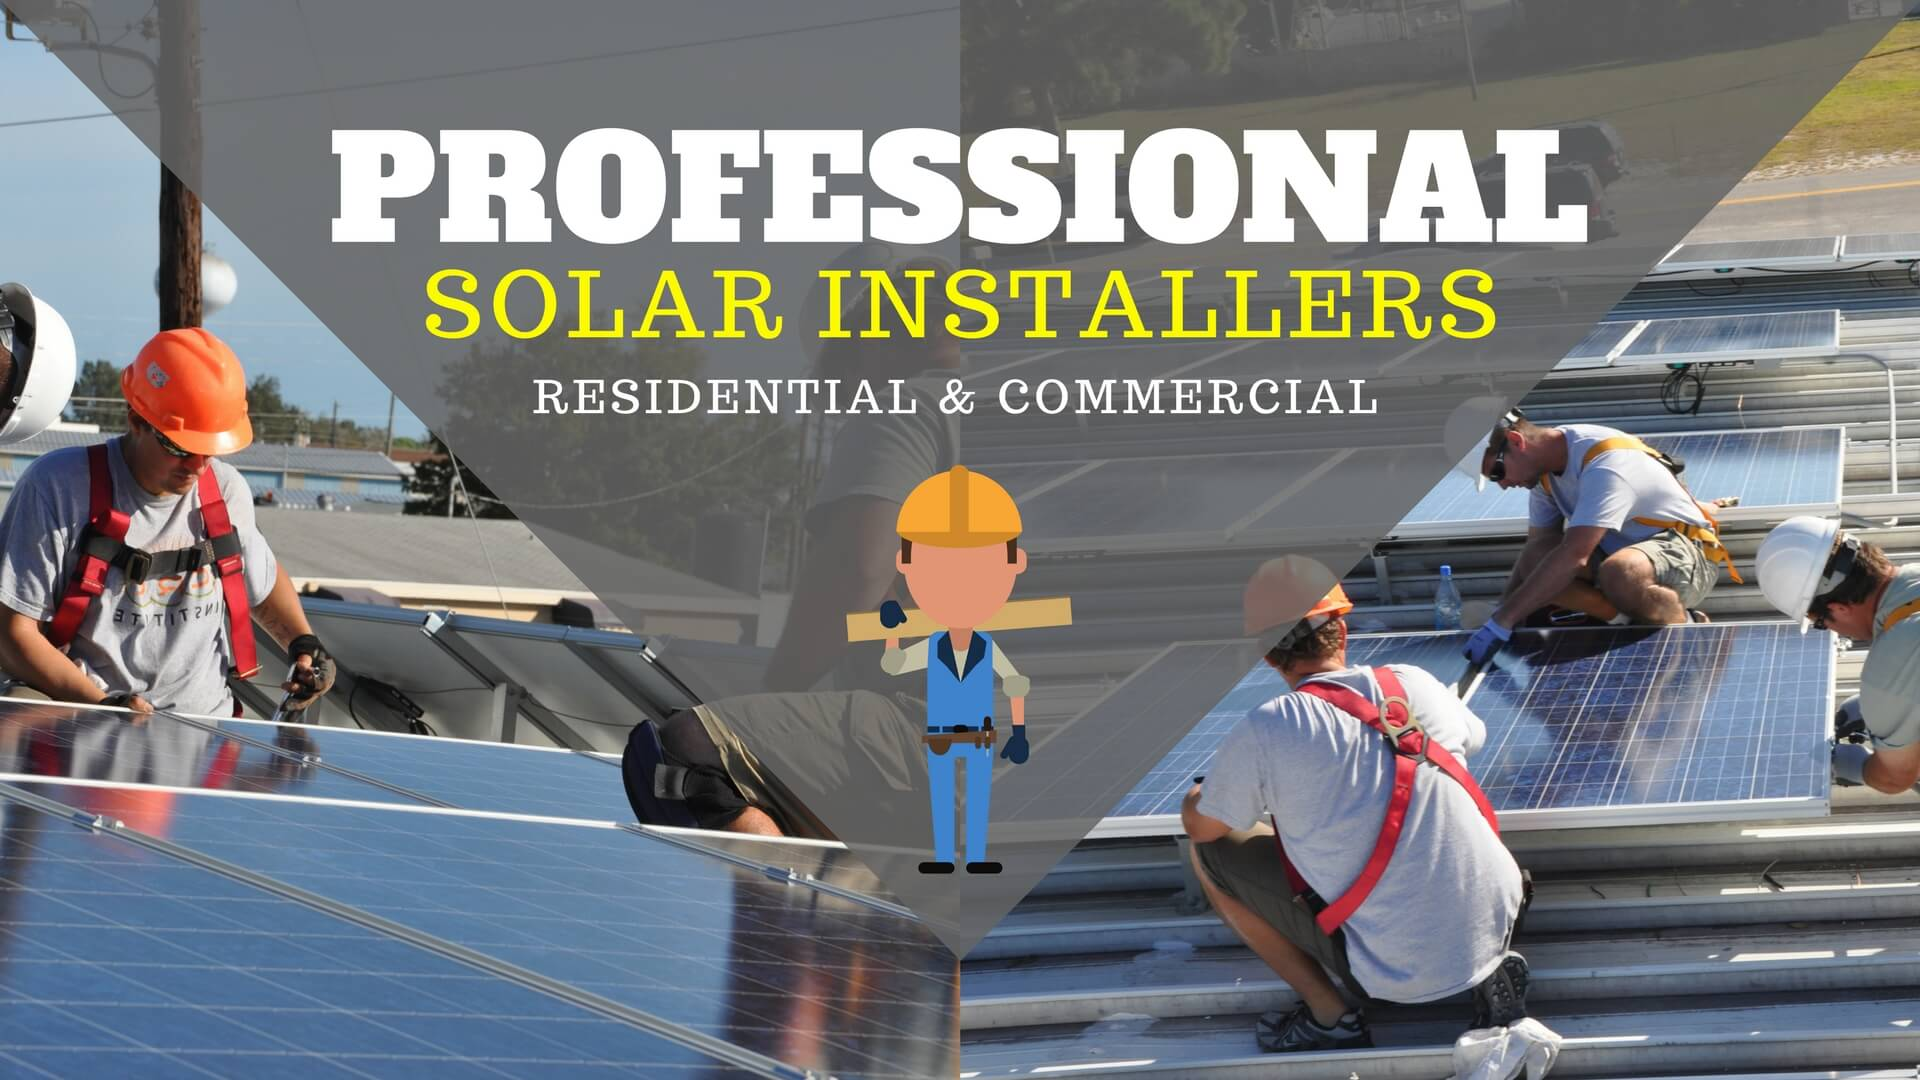 We offer professional solar electric, solar hot water and solar pool heating installations services for residential and commercial applications